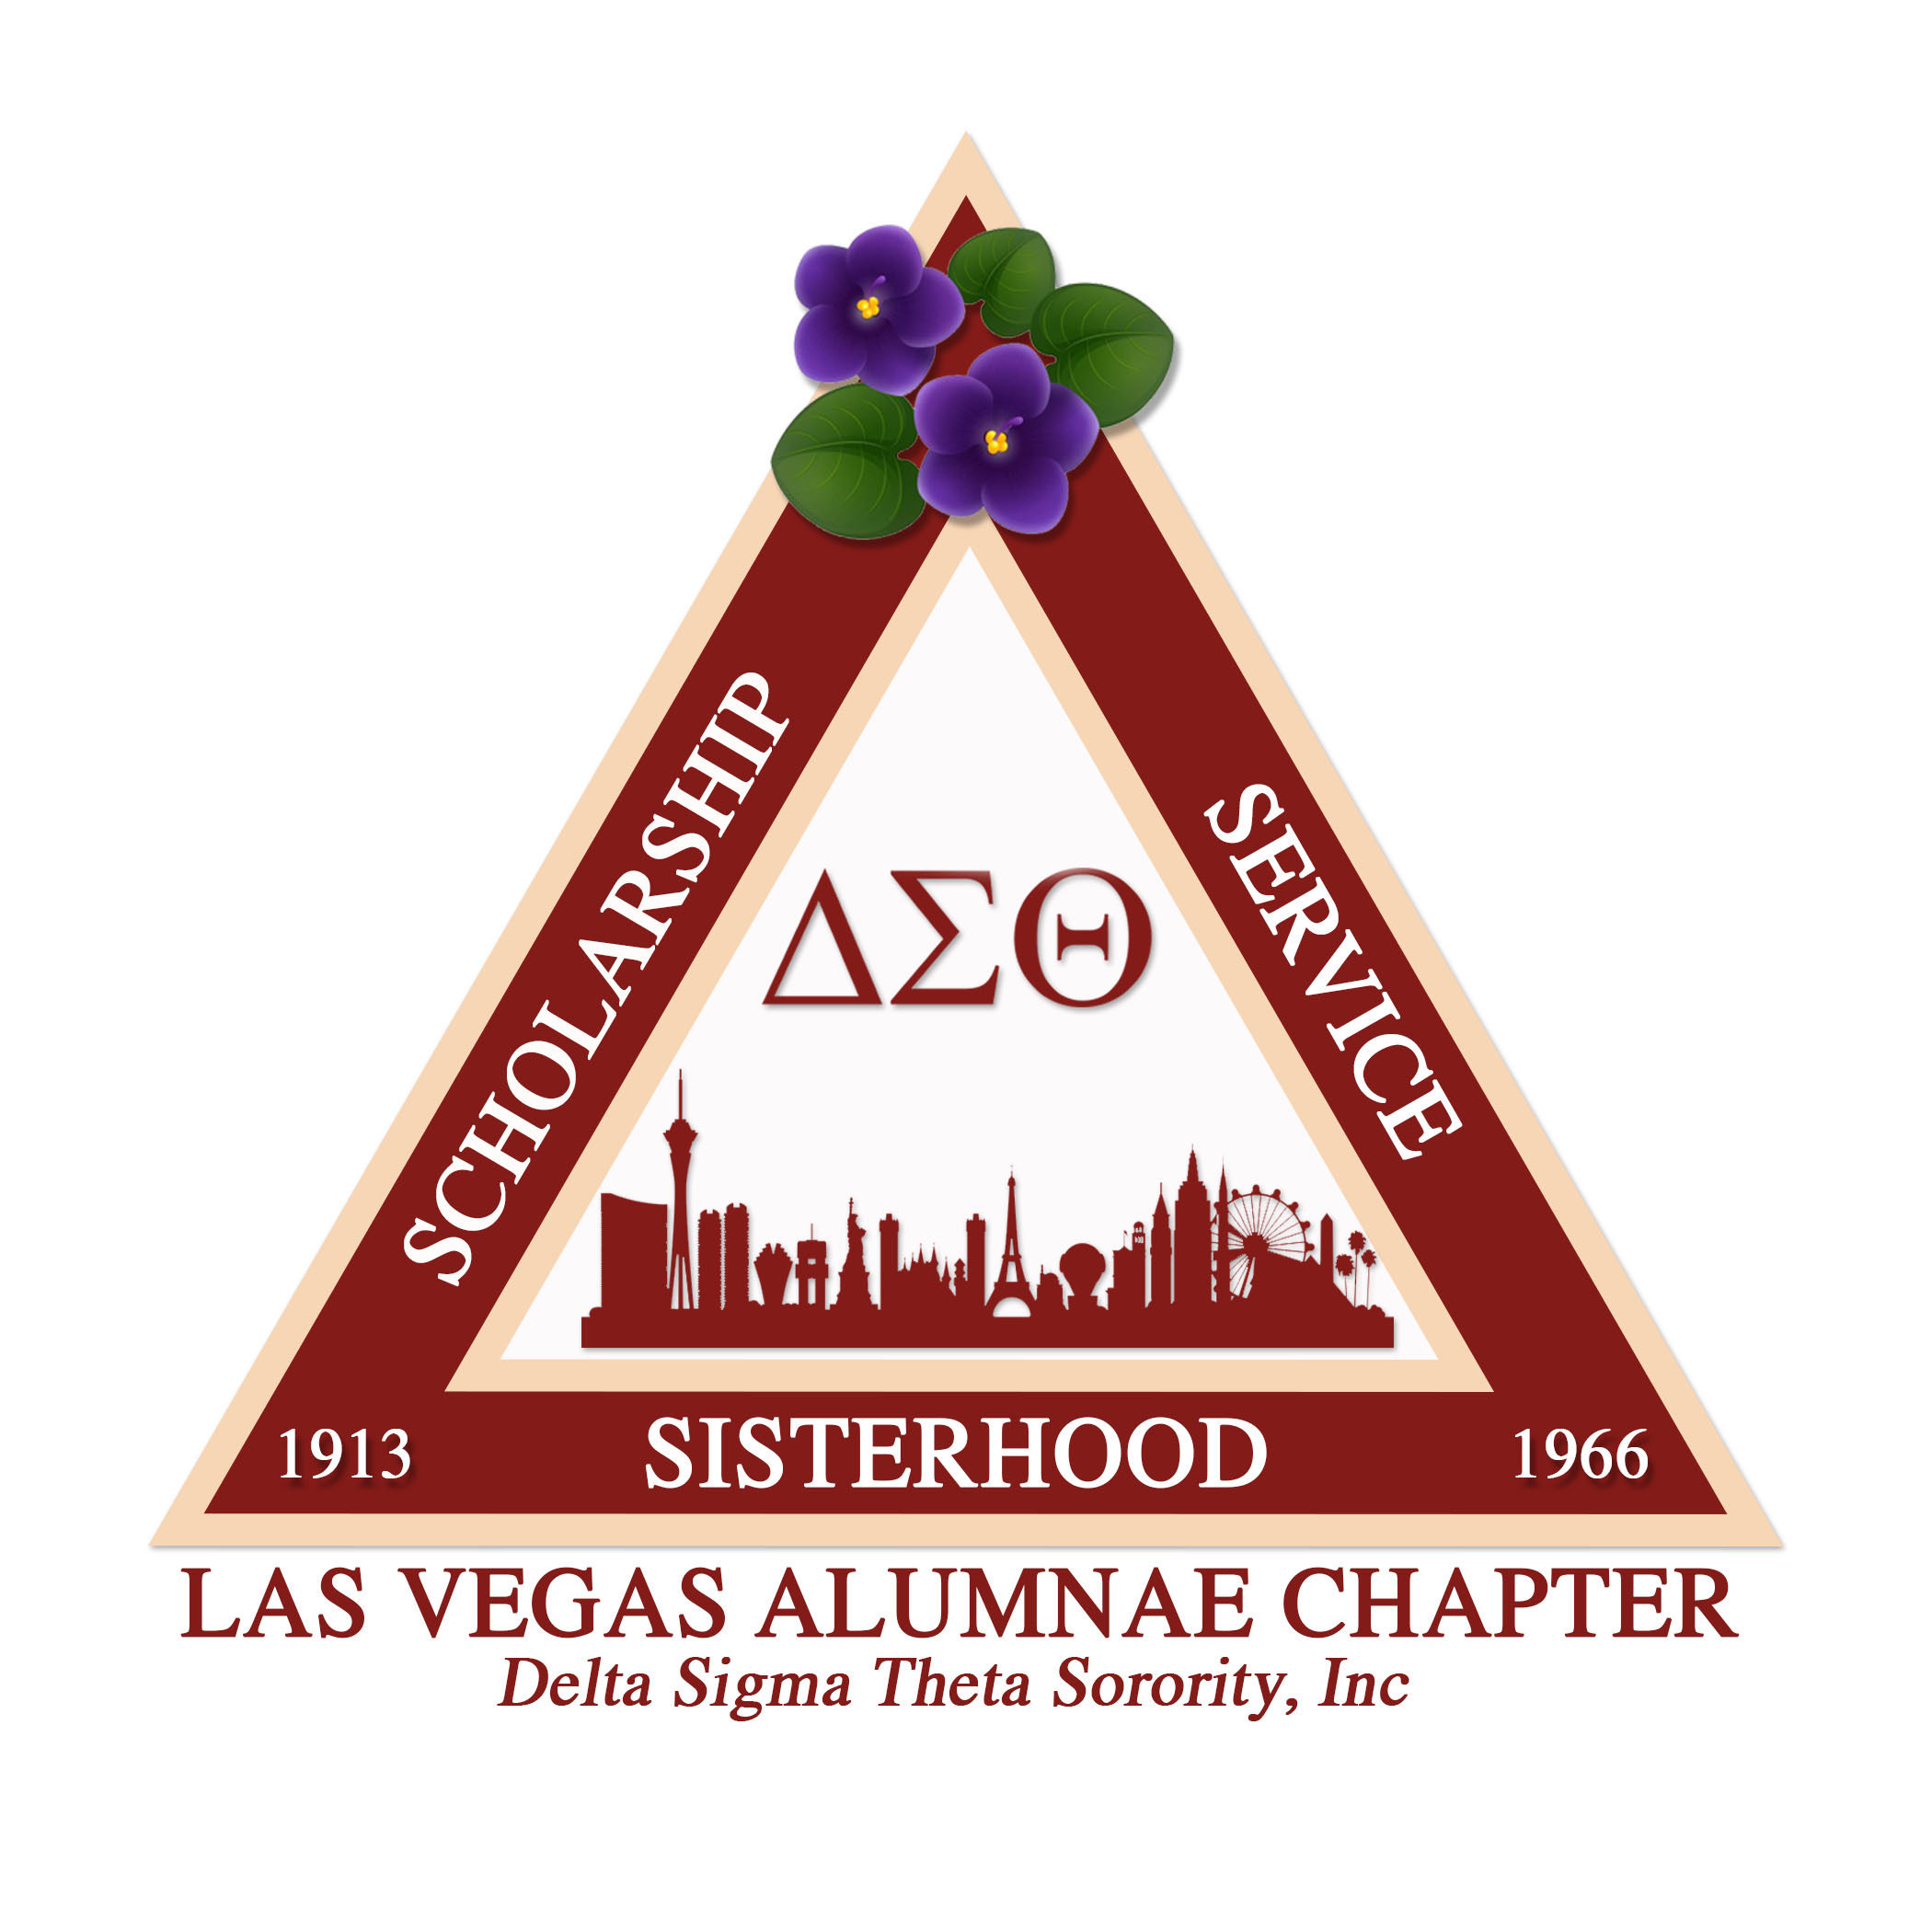 Las Vegas Alumnae Chapter